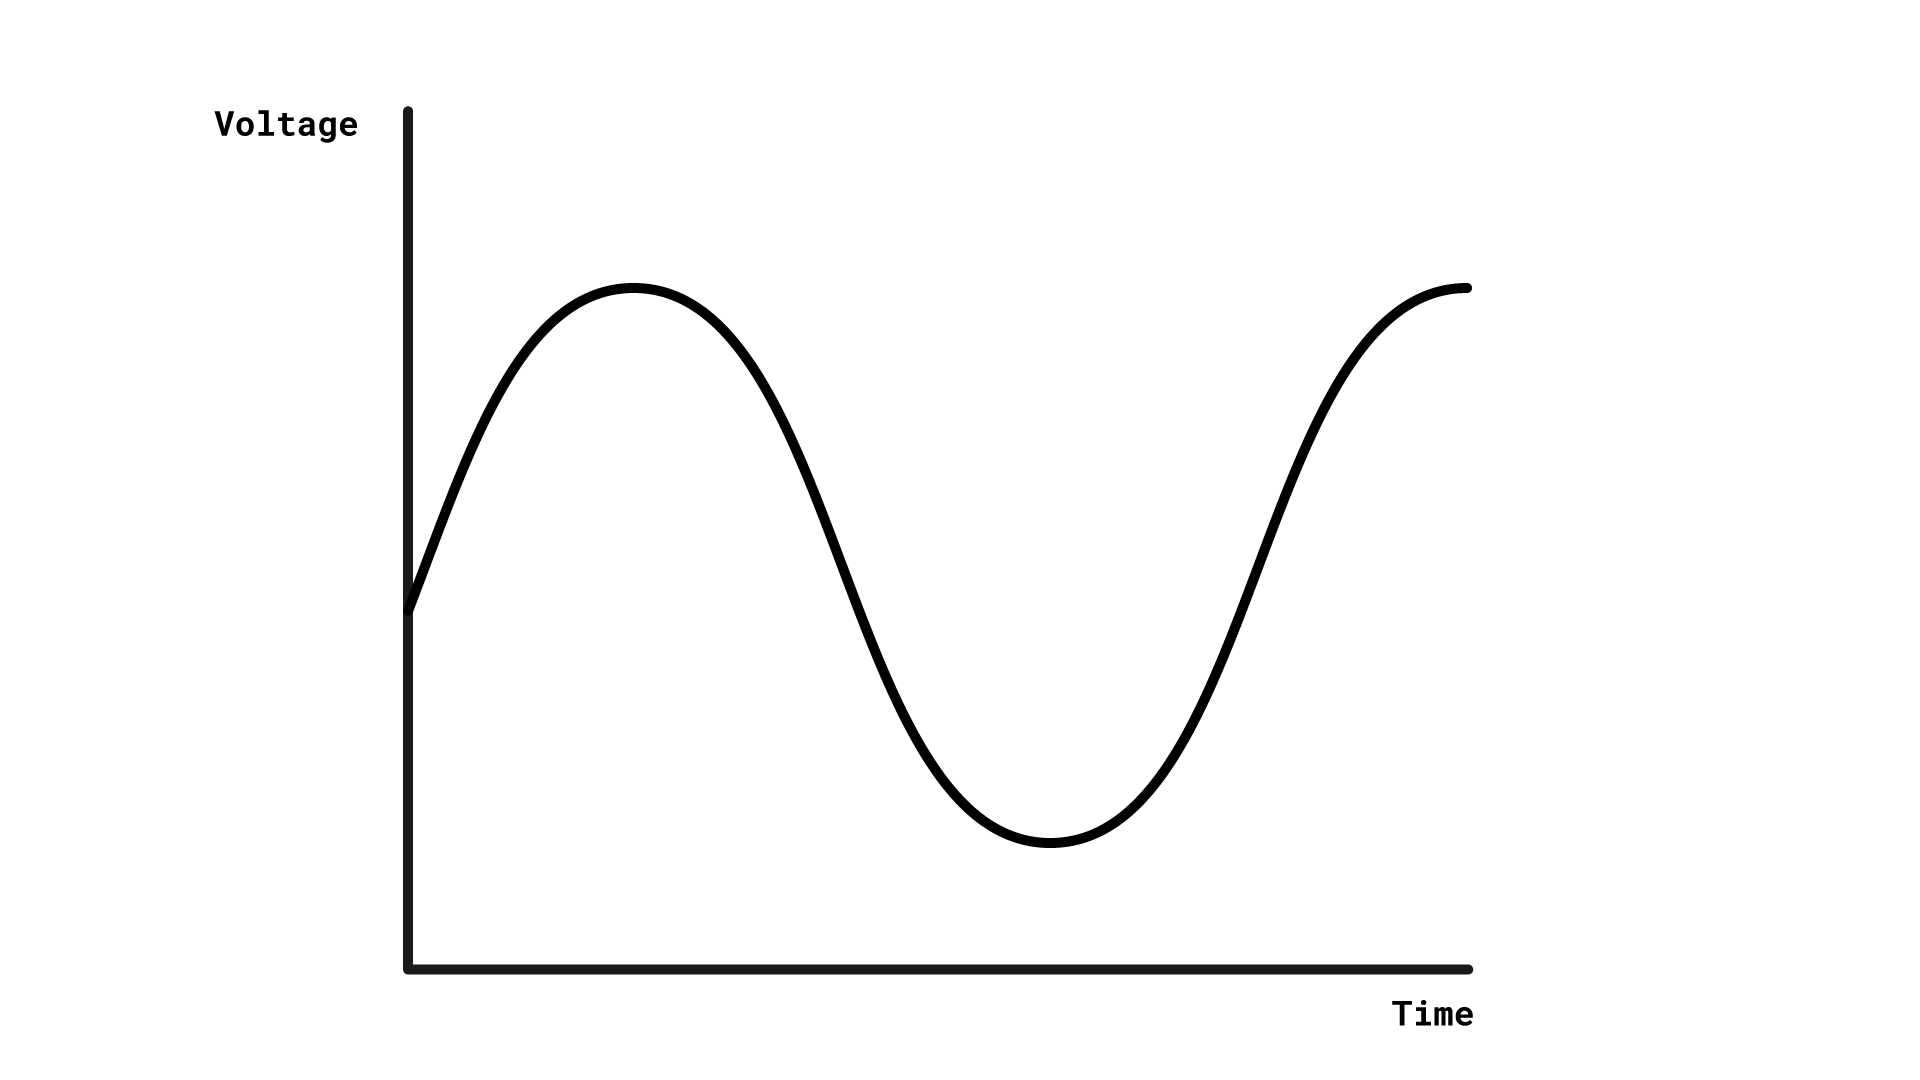 A graph with the x-axis labelled as time and the y-axis labelled as voltage. The graph shows a sinusoidal wave, which is at all points above the x-axis.